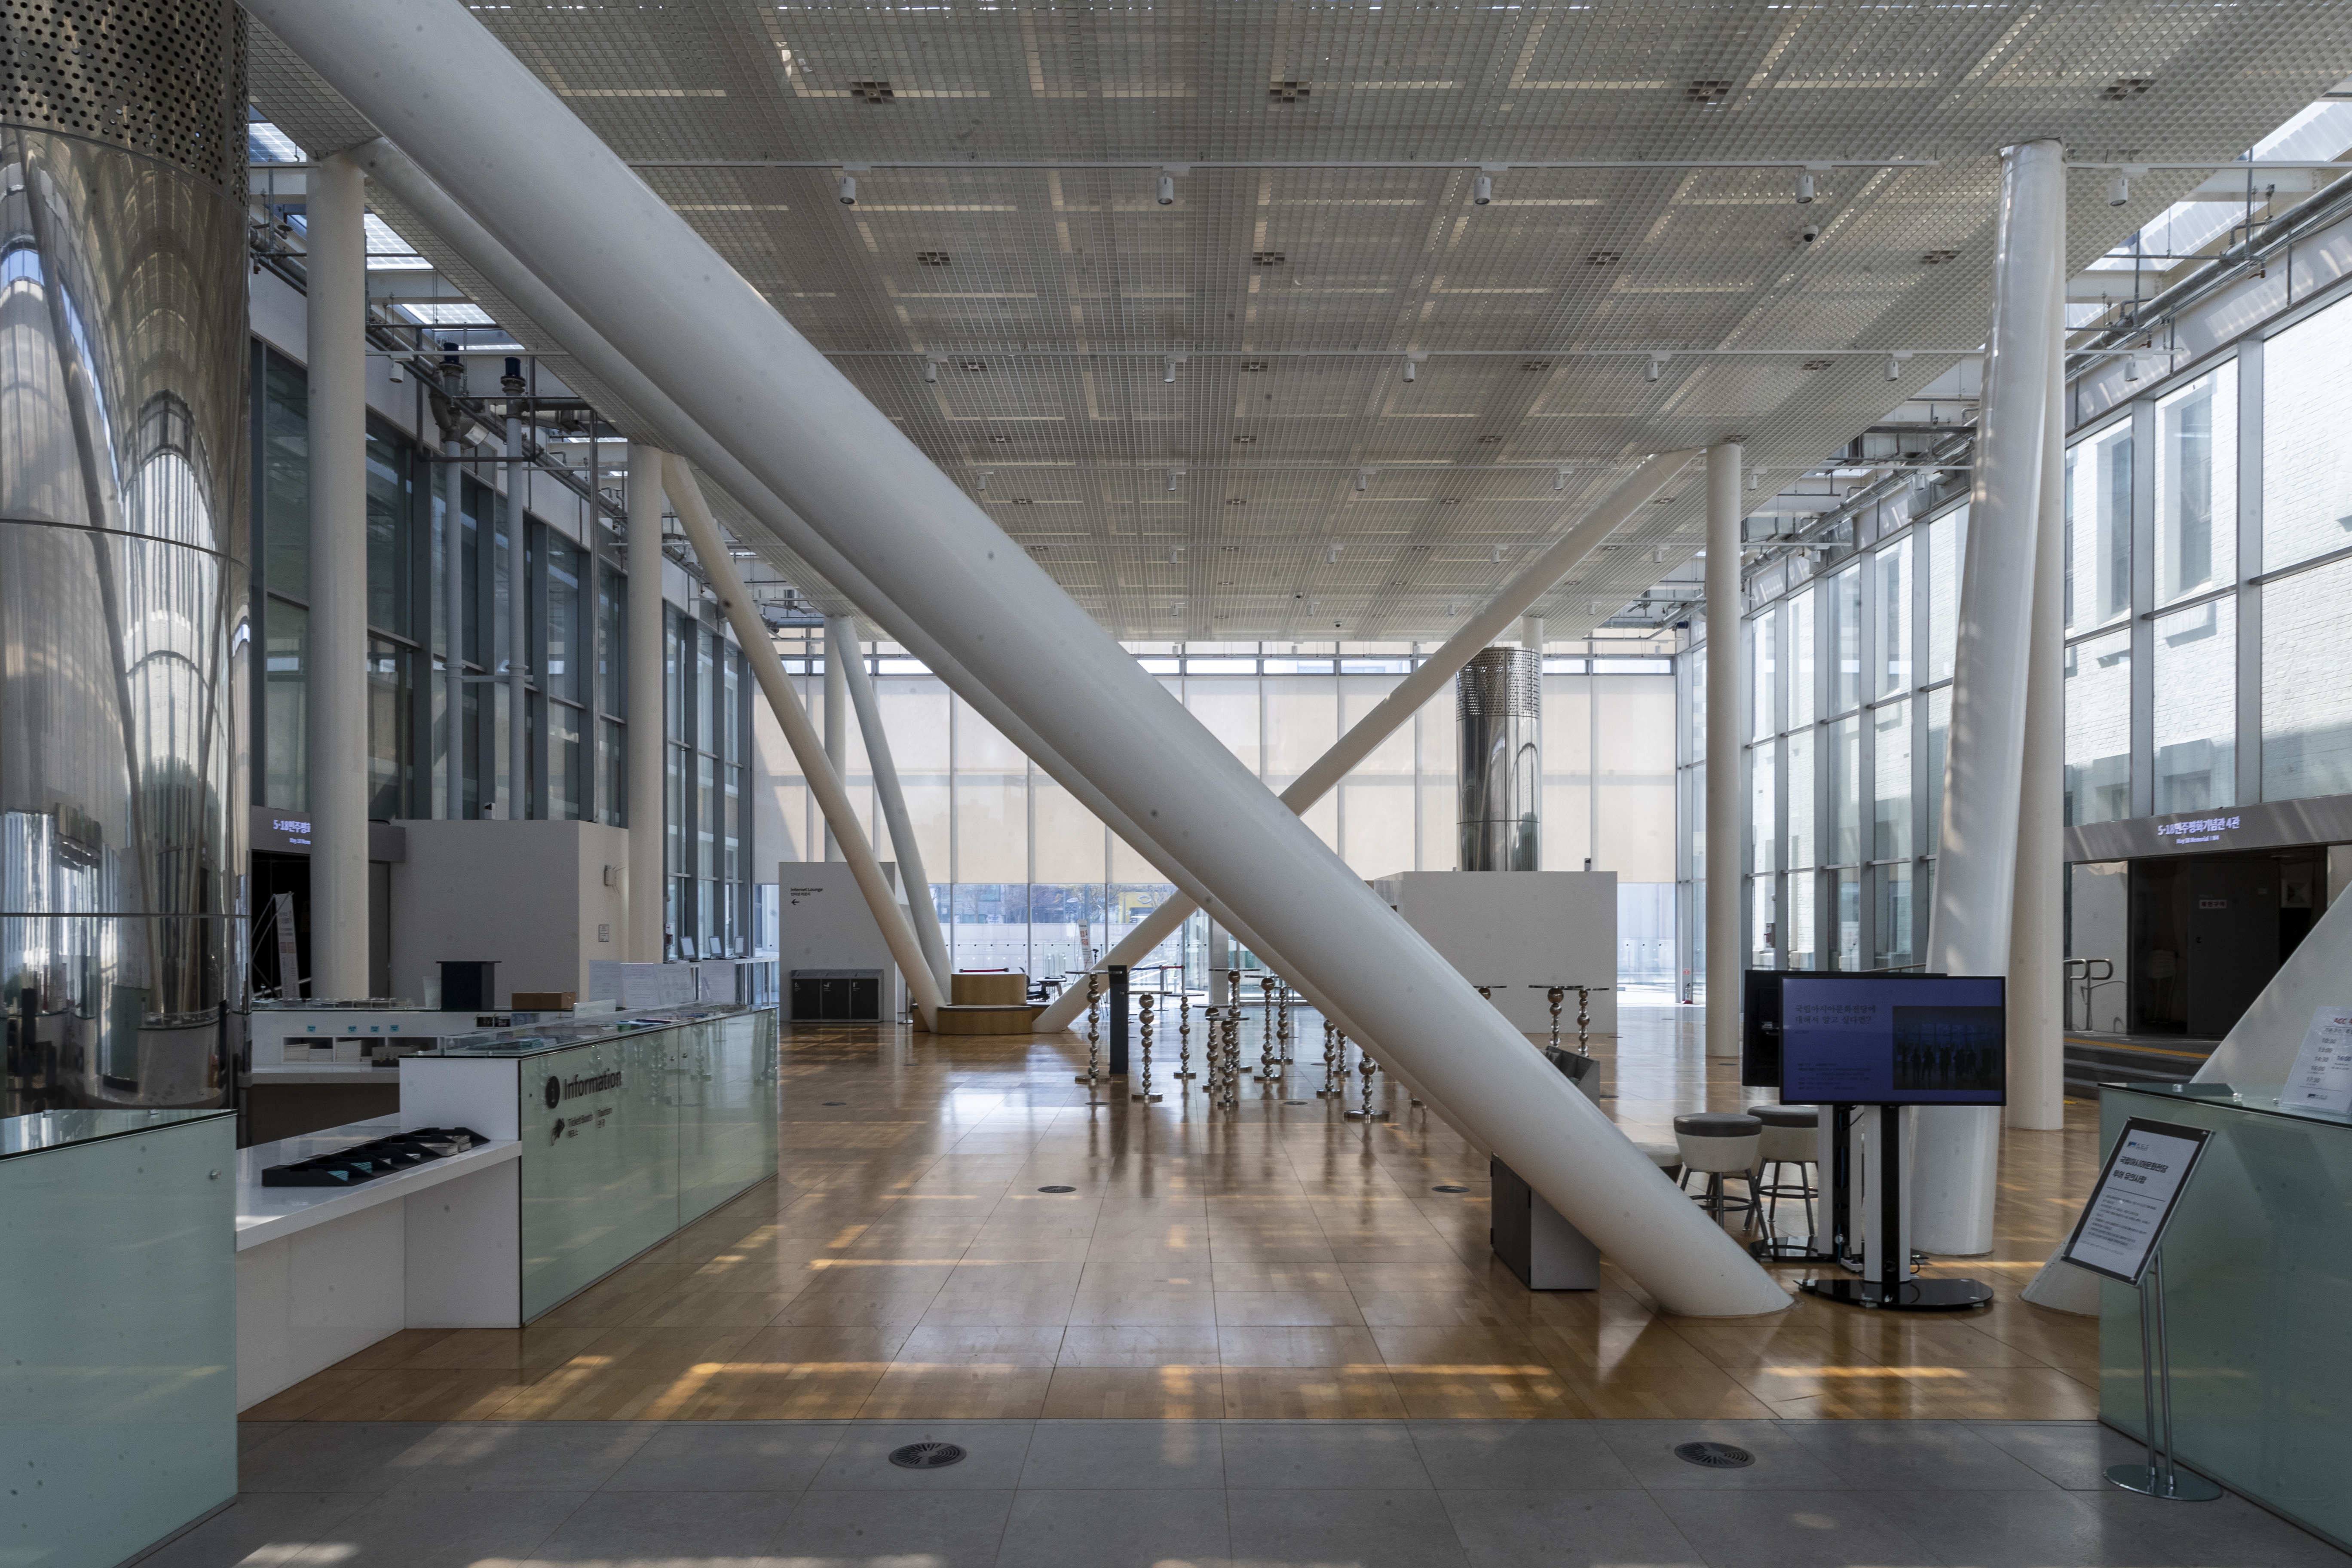 The unique interior structure at the Visitor Center of the Asia Culture Center and the public artwork